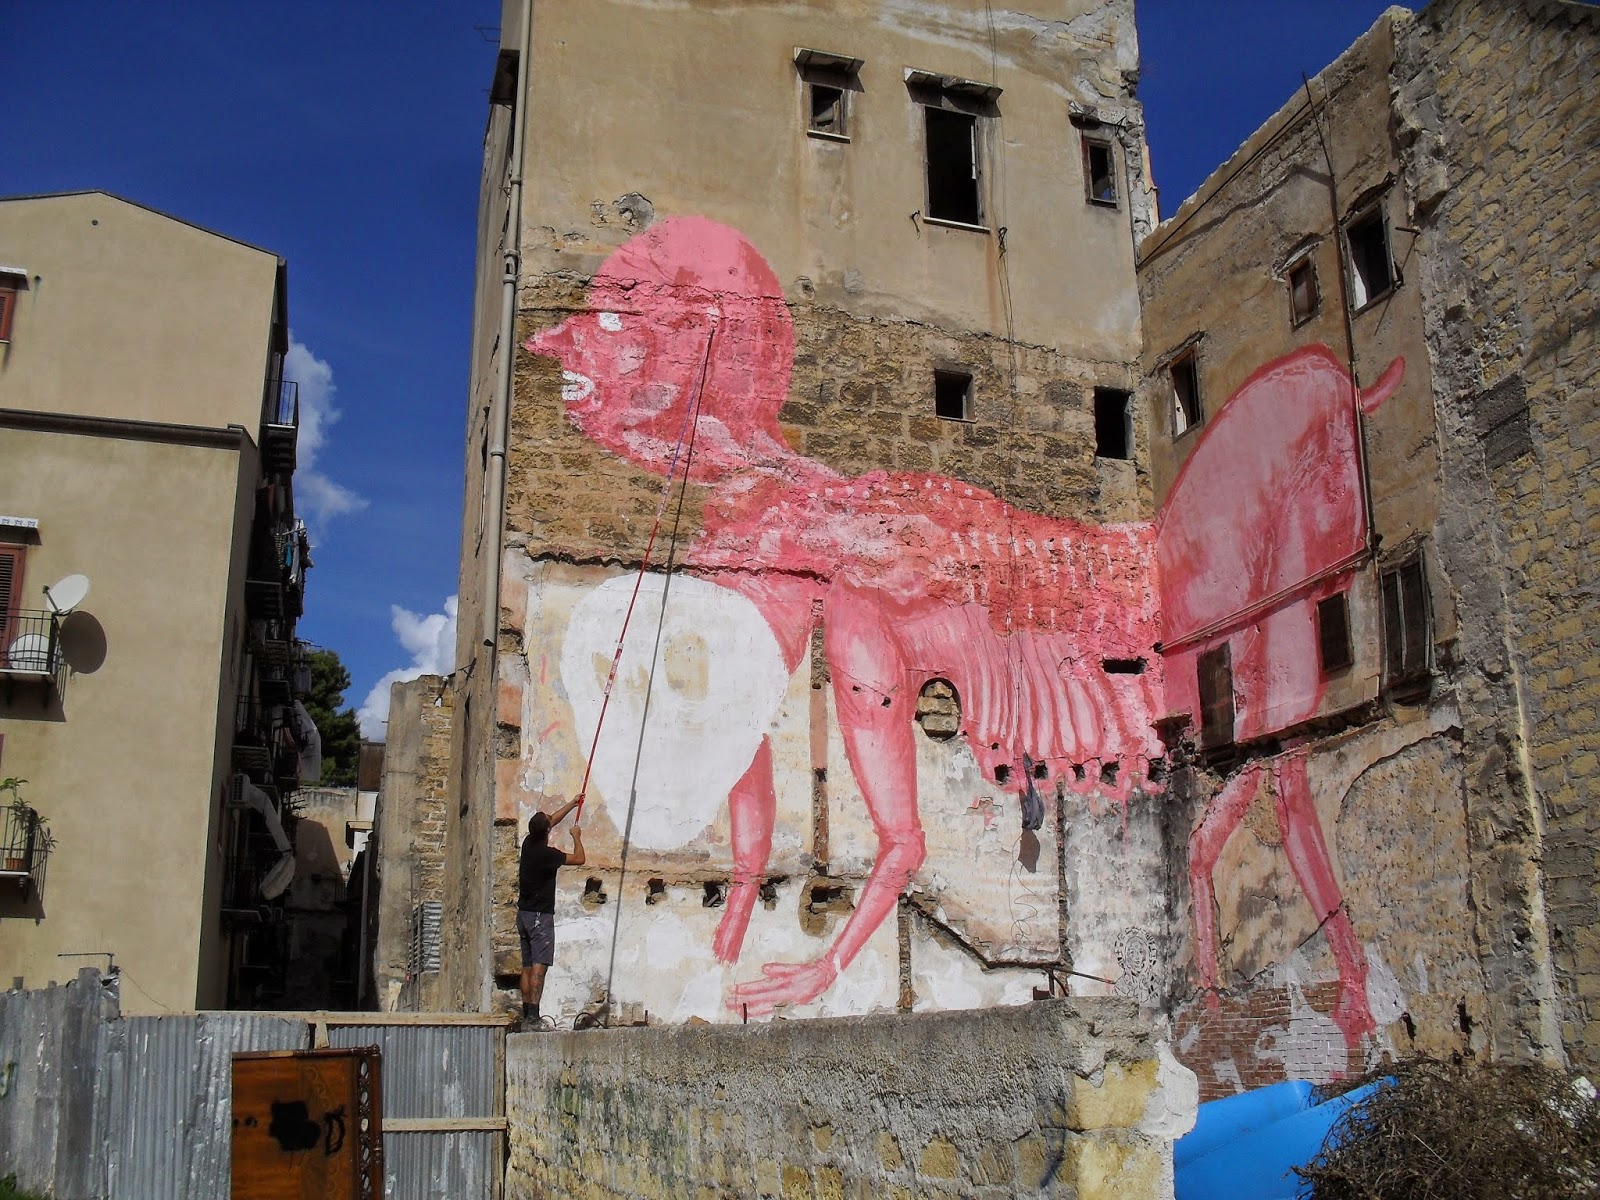 emajons-new-mural-in-vucciria-and-kalsa-palermo-04